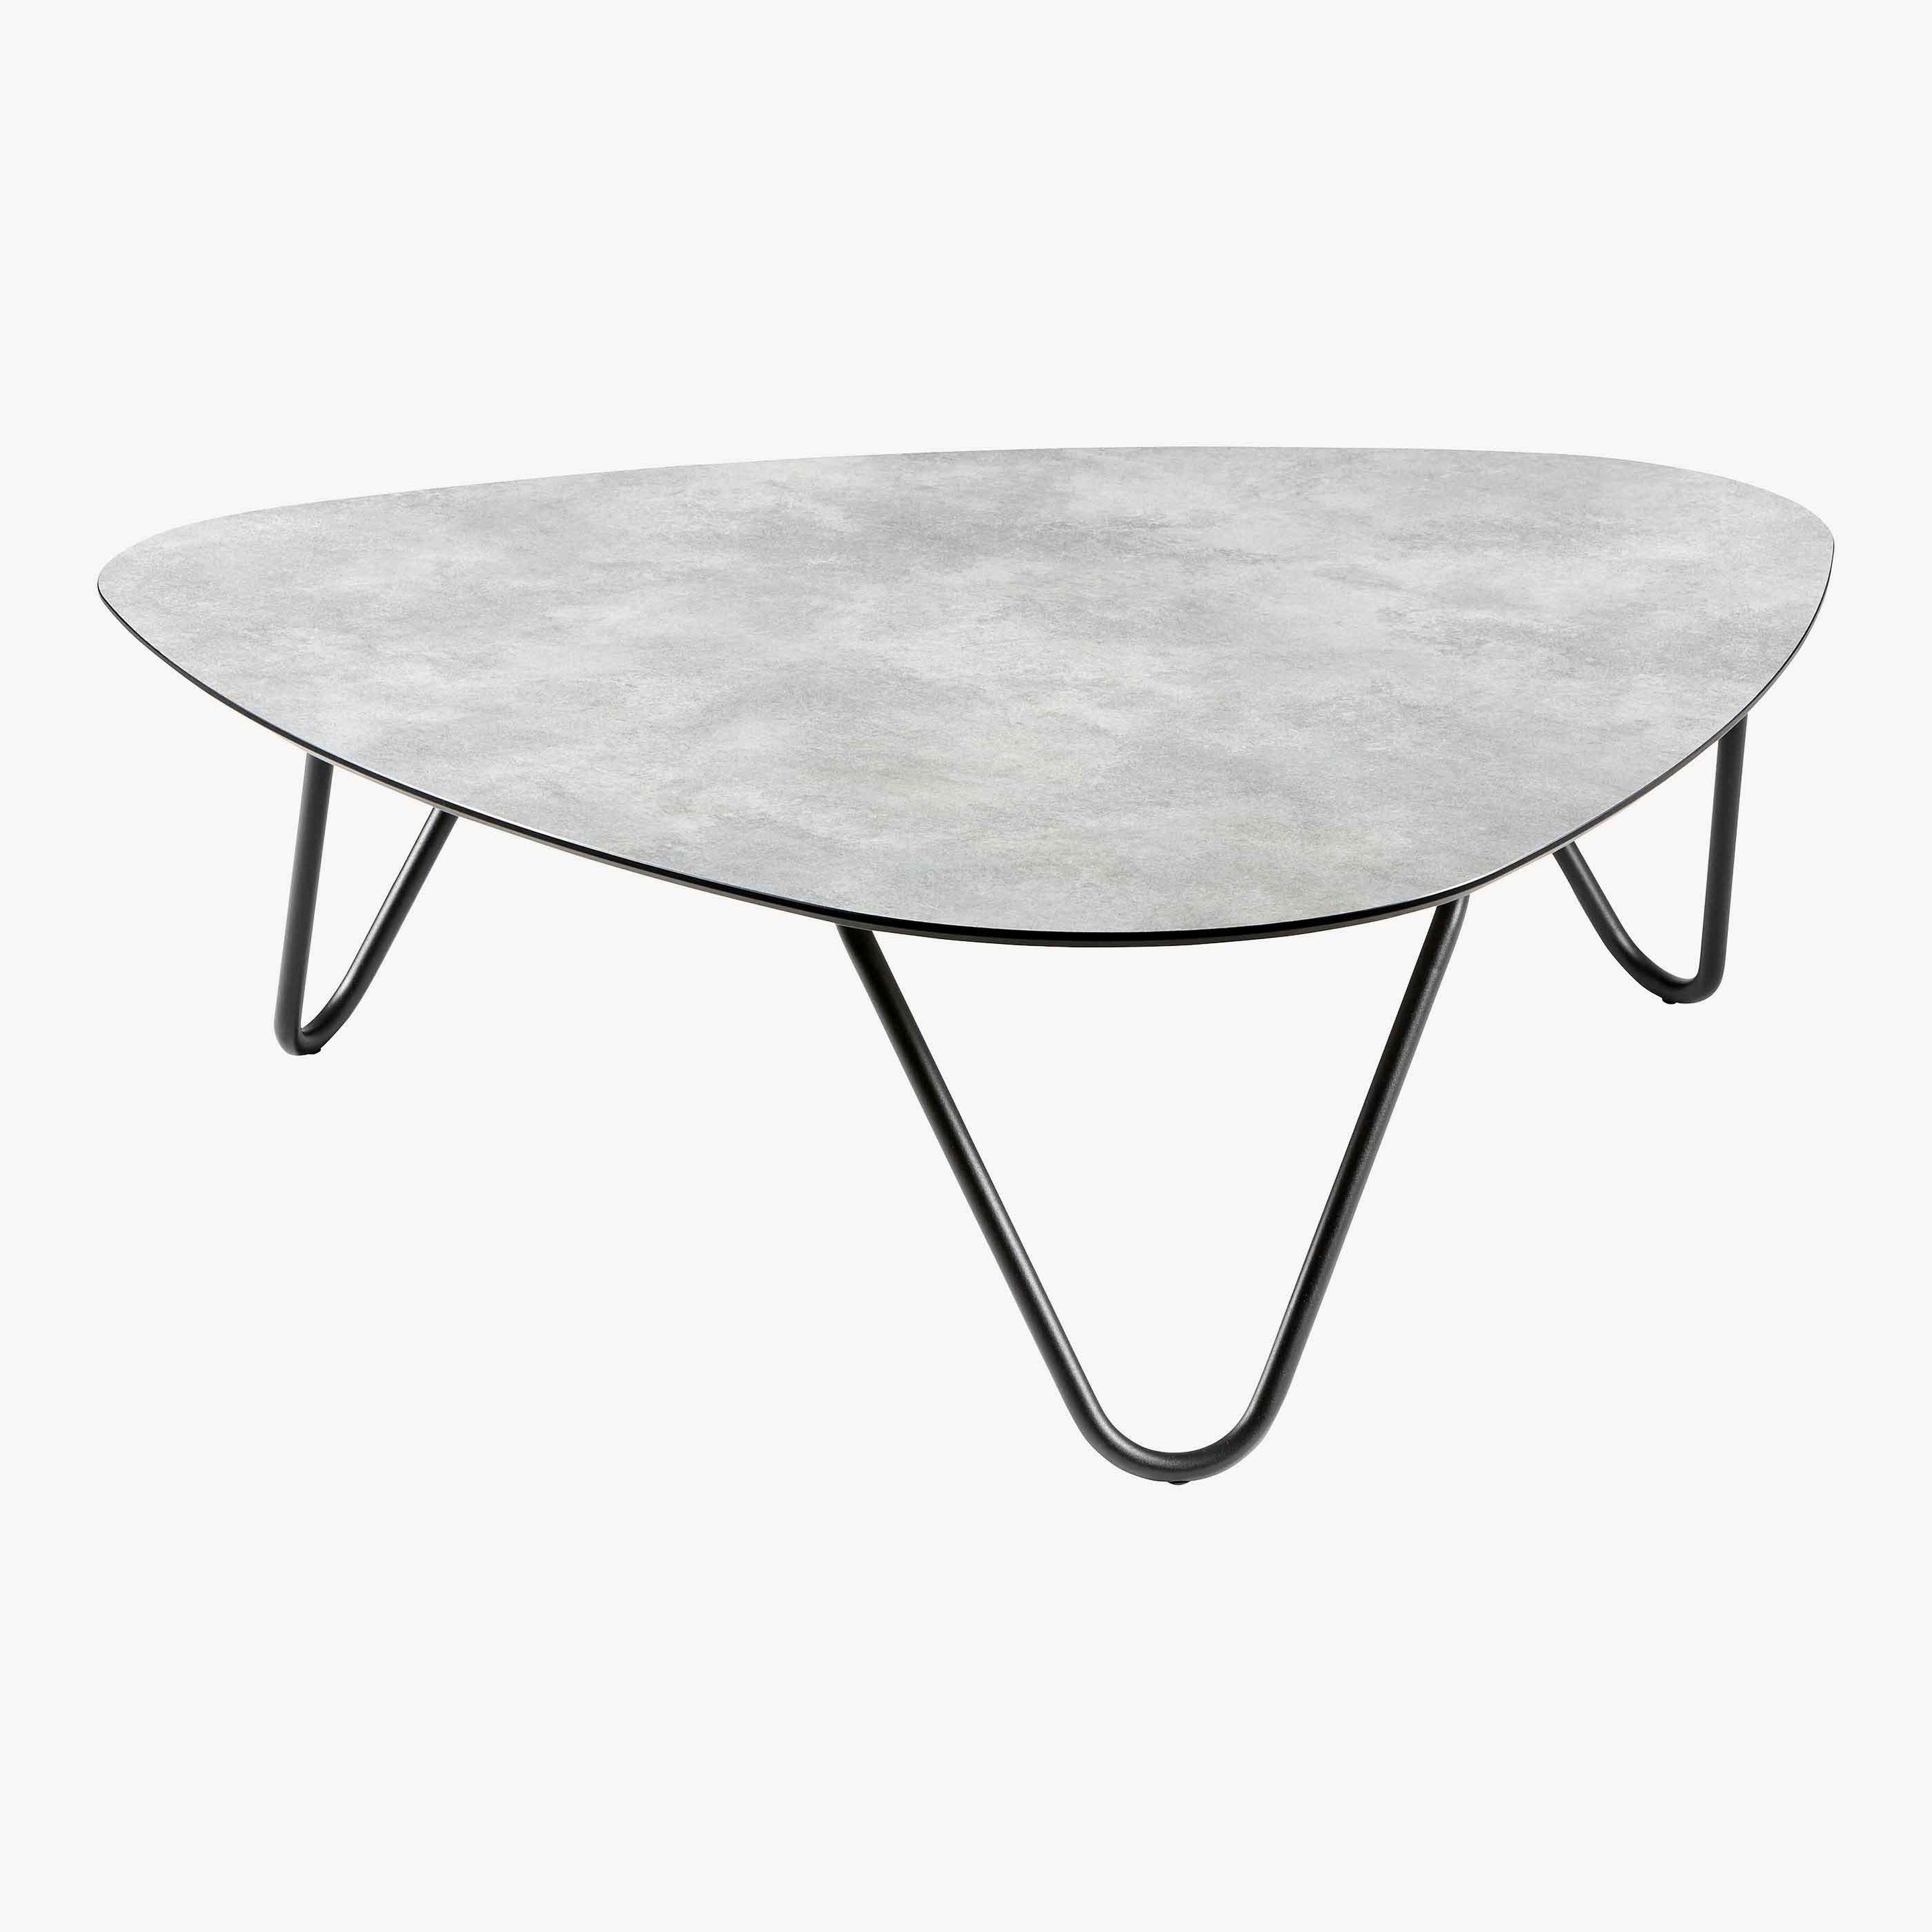 COCOON TABLE